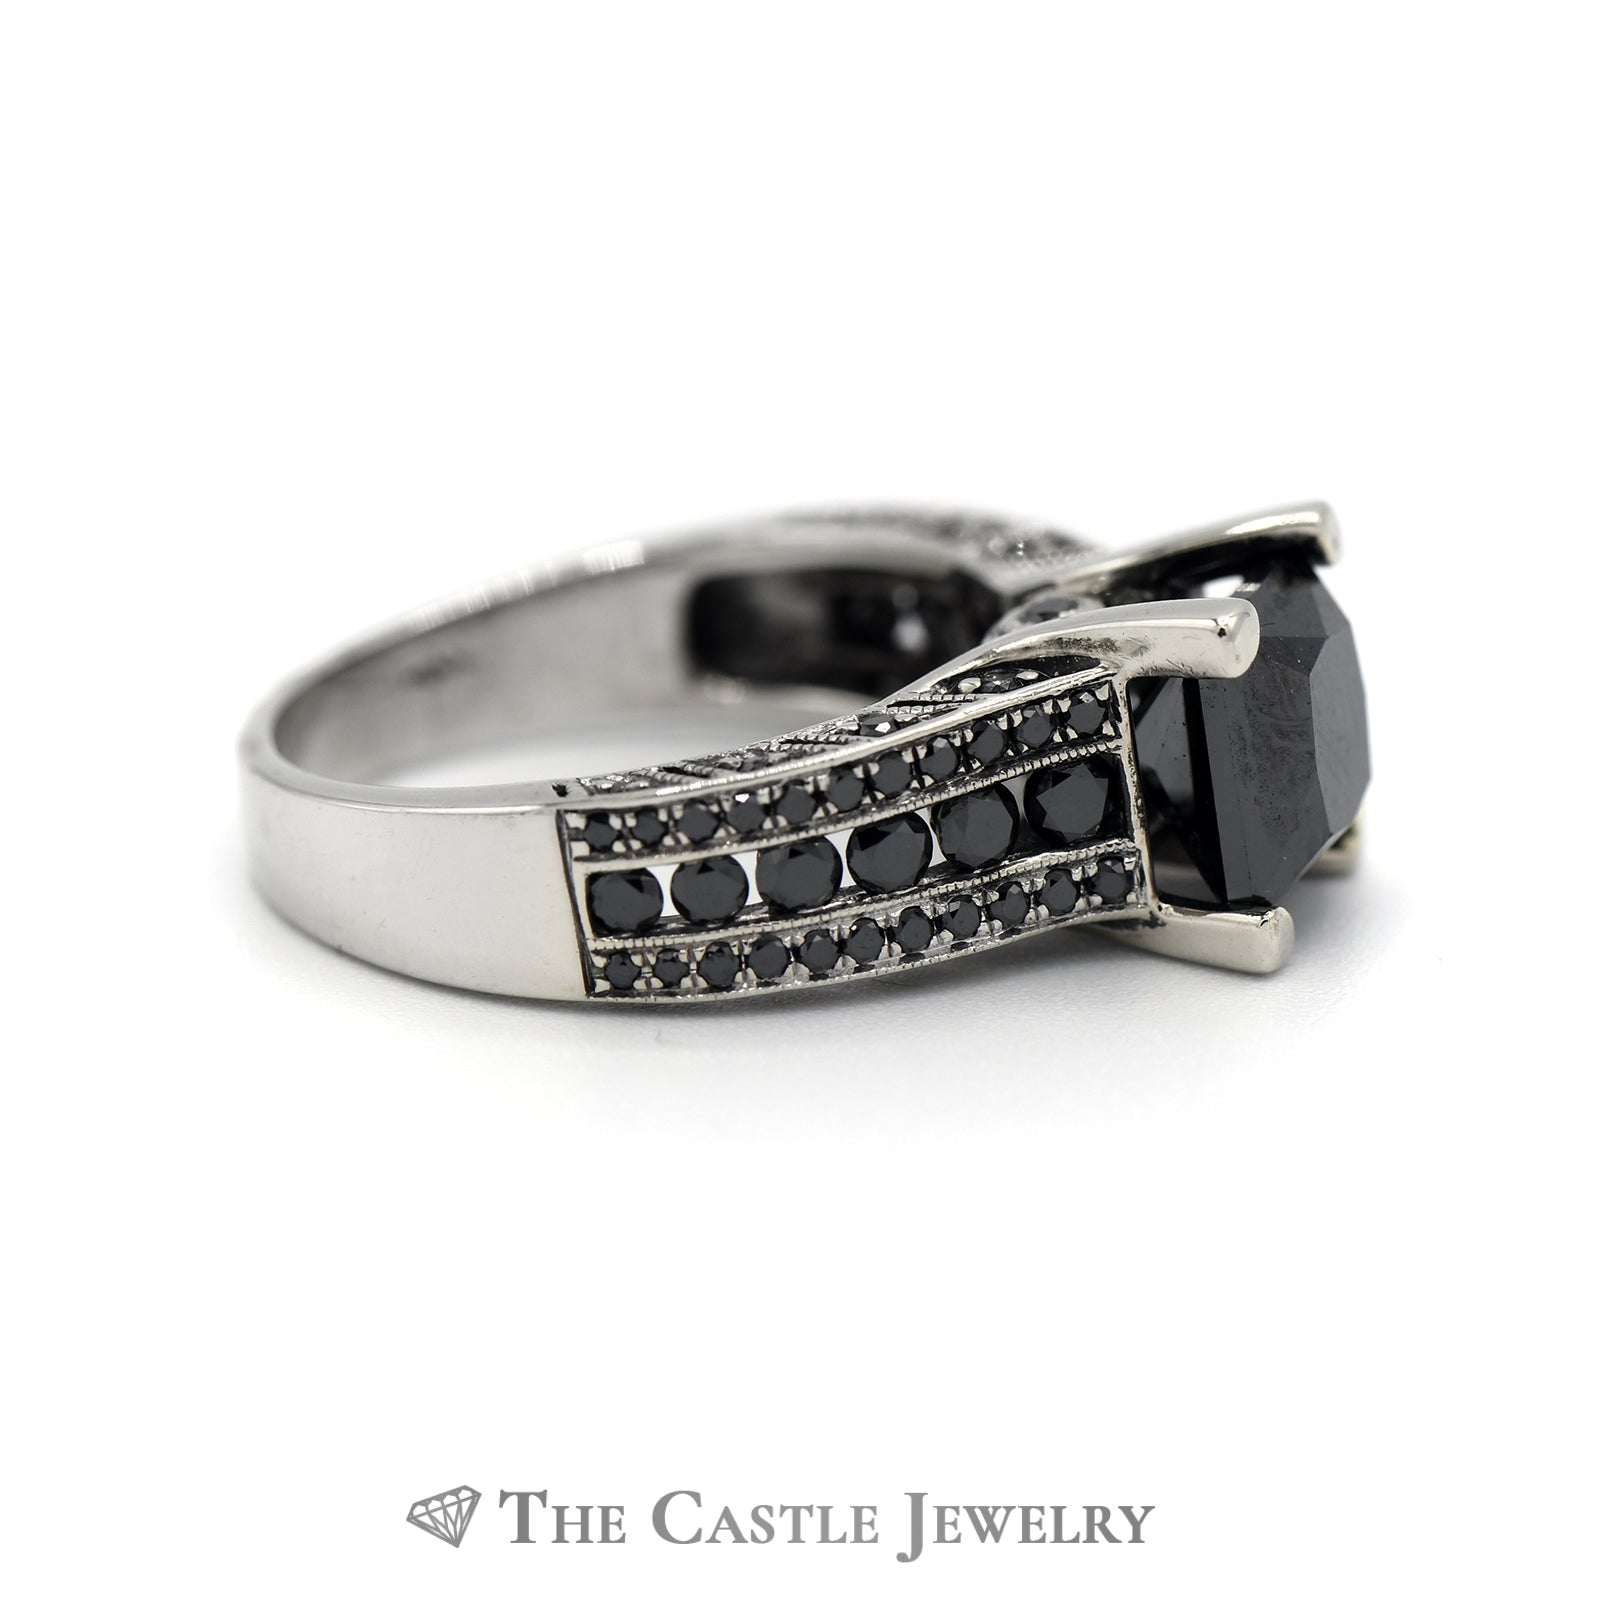 2.75cttw Square Black Diamond Engagement Ring with Black Diamond Accents in 14k White Gold-2